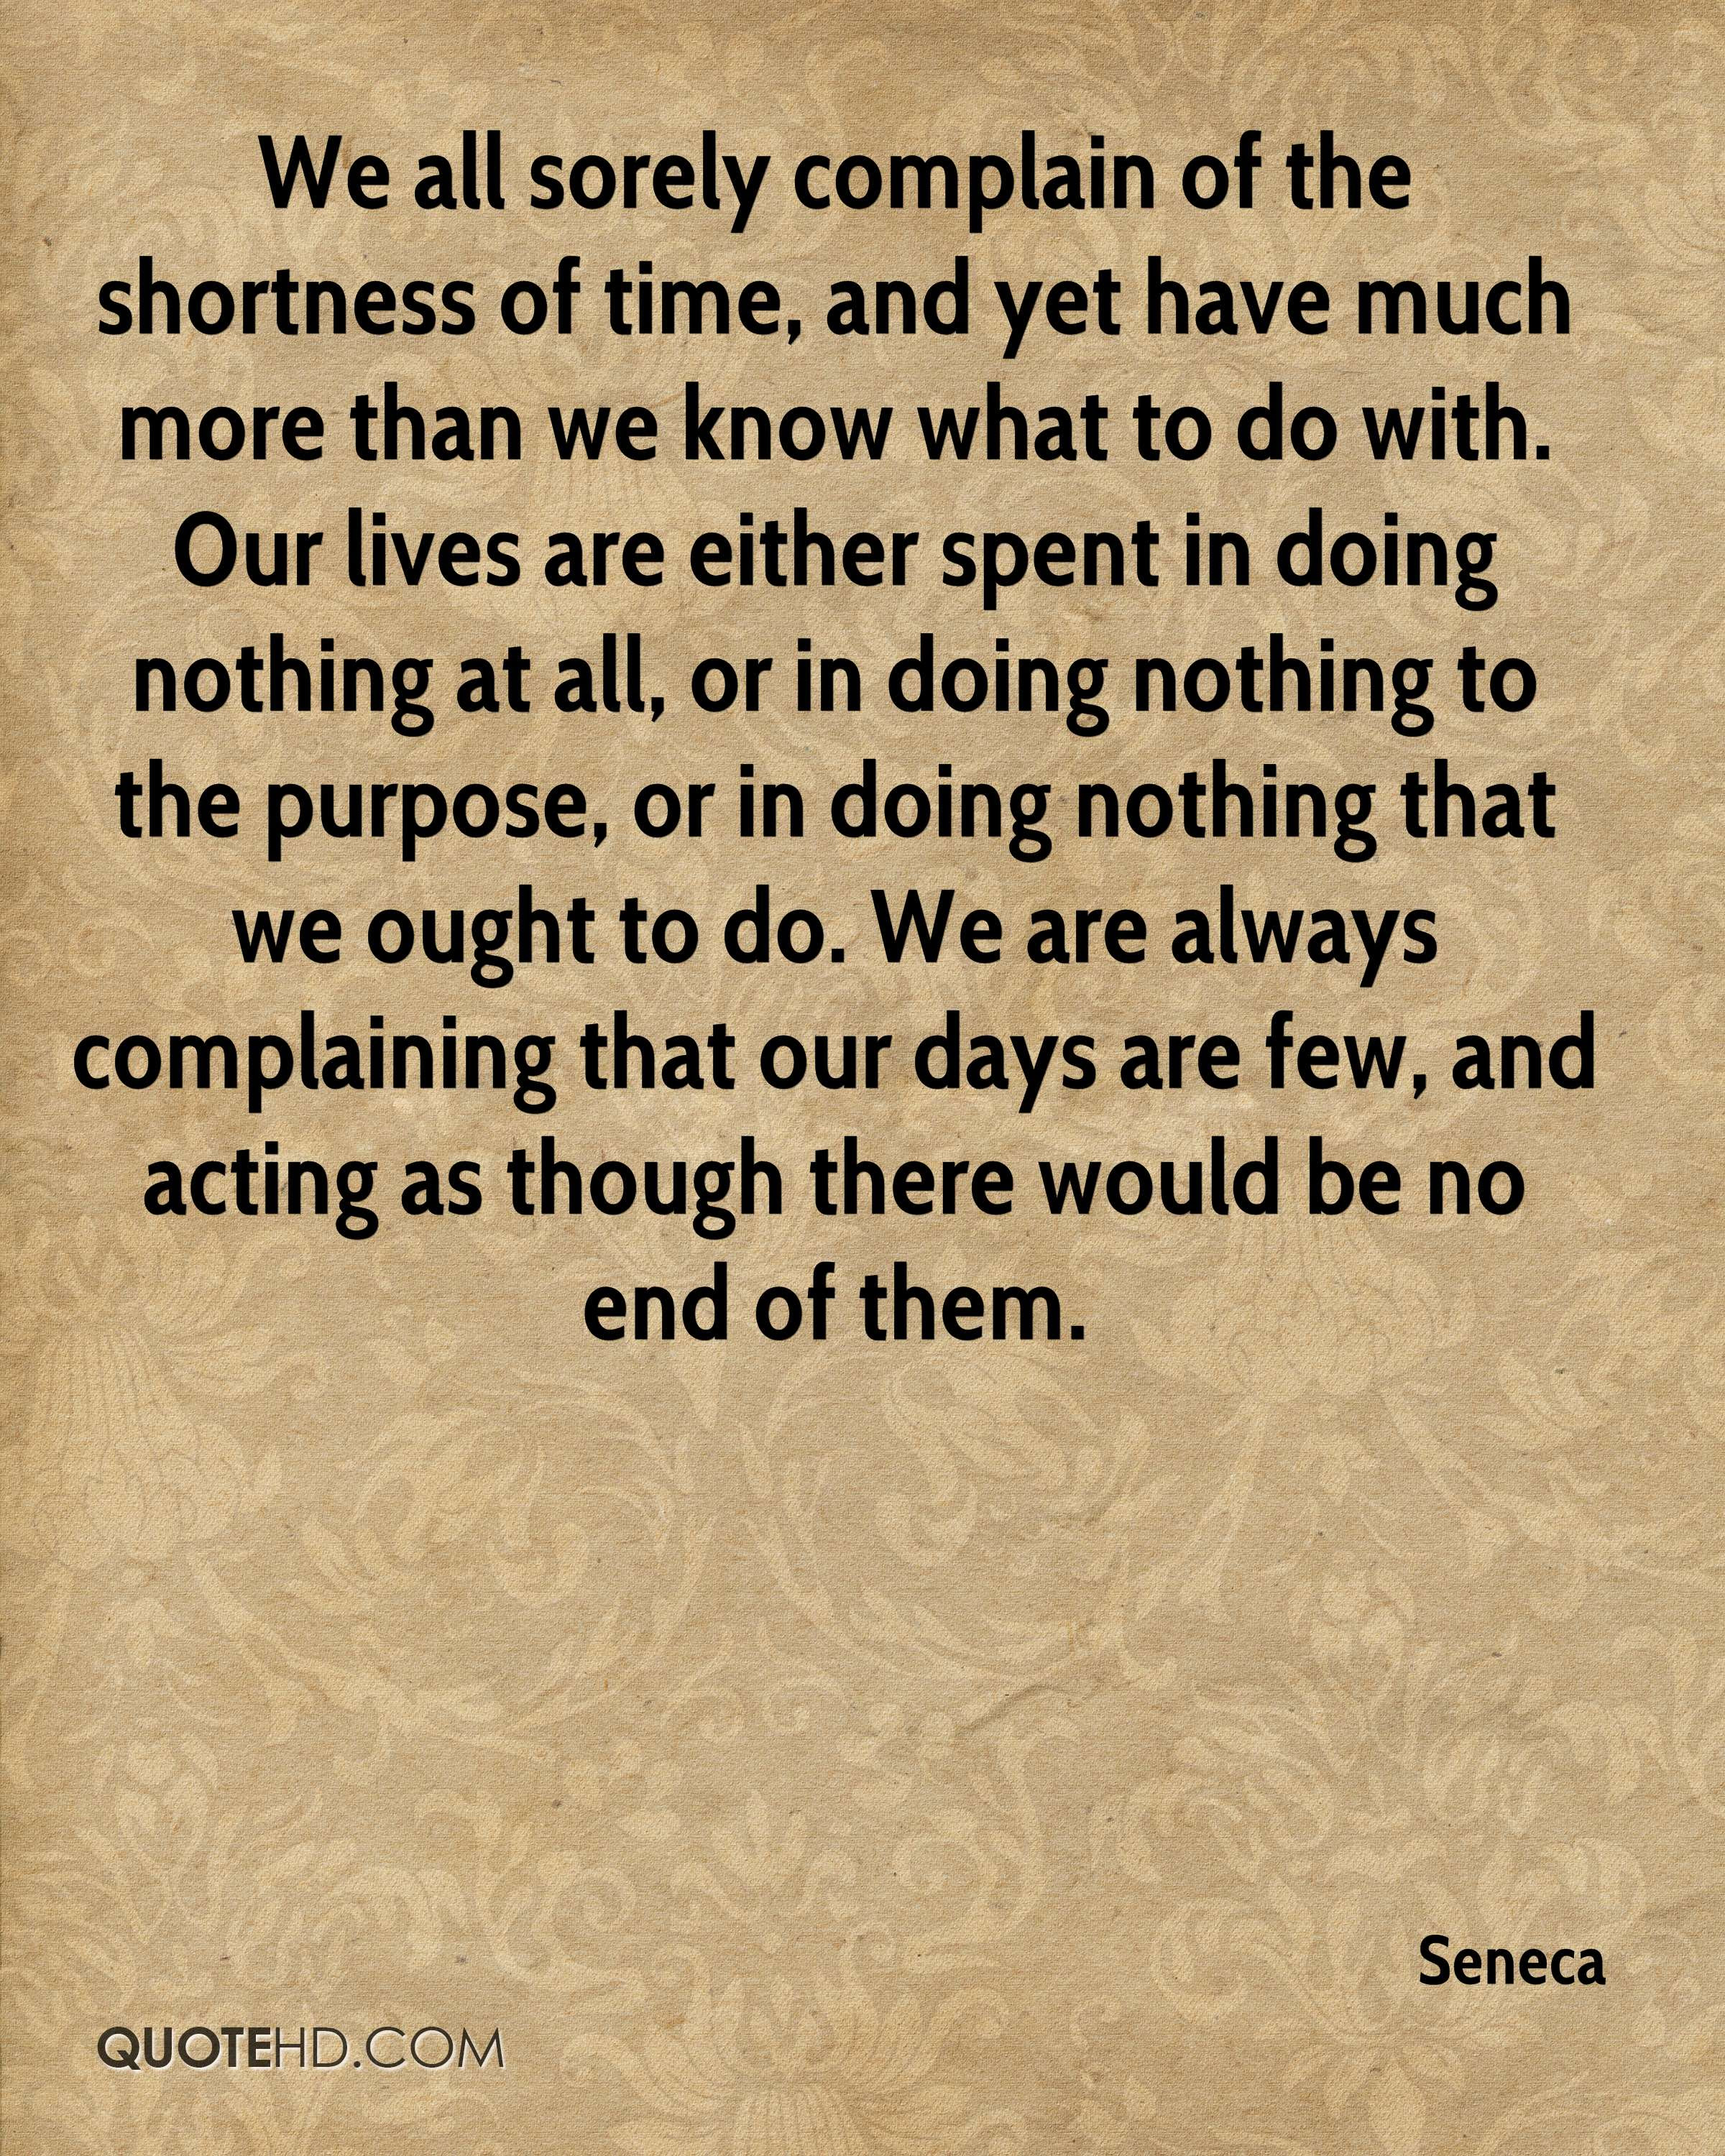 Seneca Shortness Of Life Quotes Best Life Quotes In Hd Images